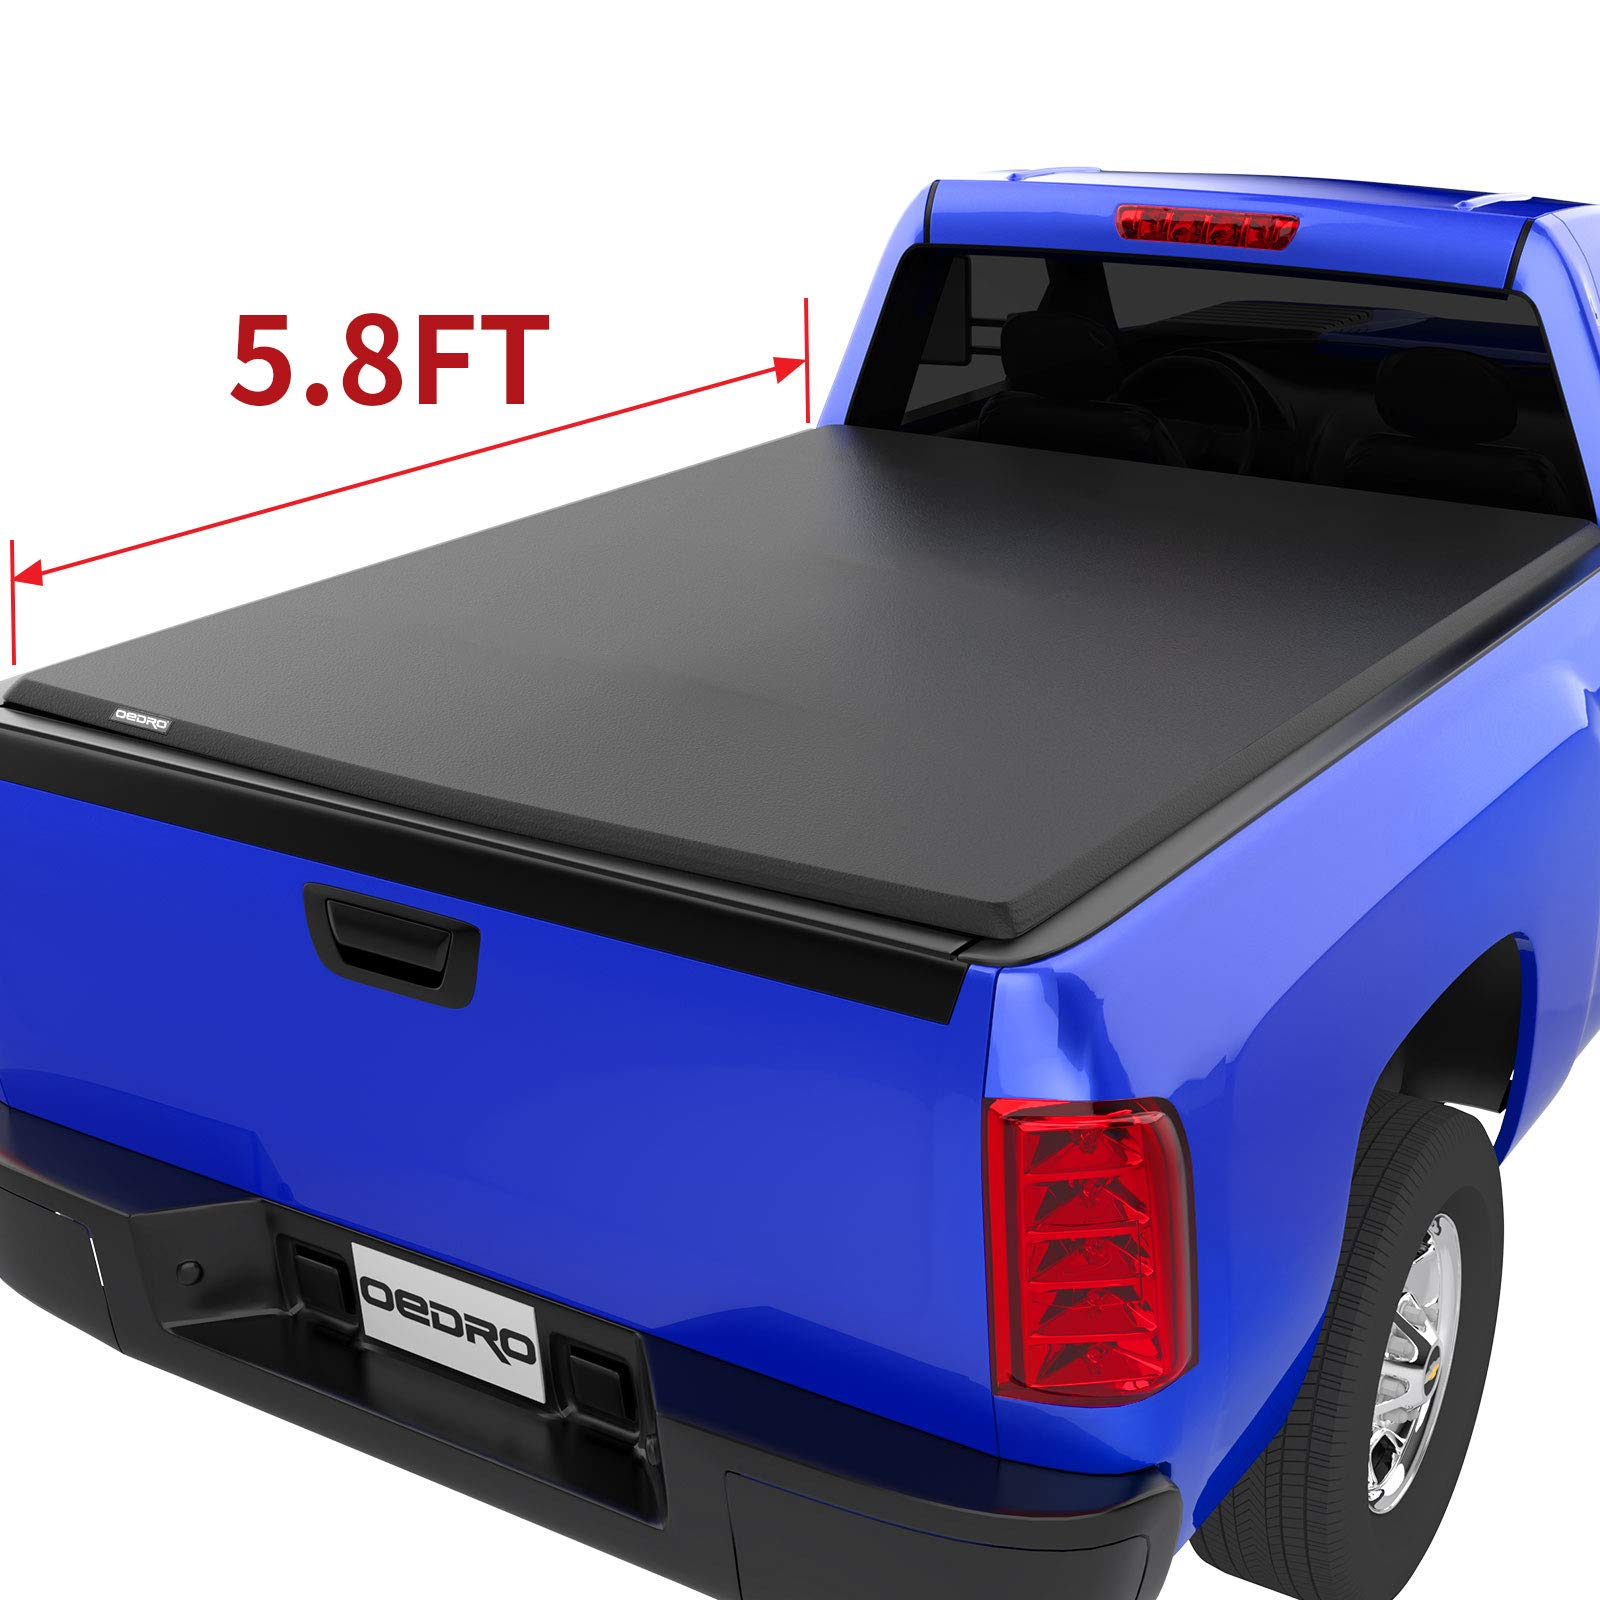 Oedro Soft Roll Up Tonneau Cover Compati Buy Online In Brunei At Desertcart